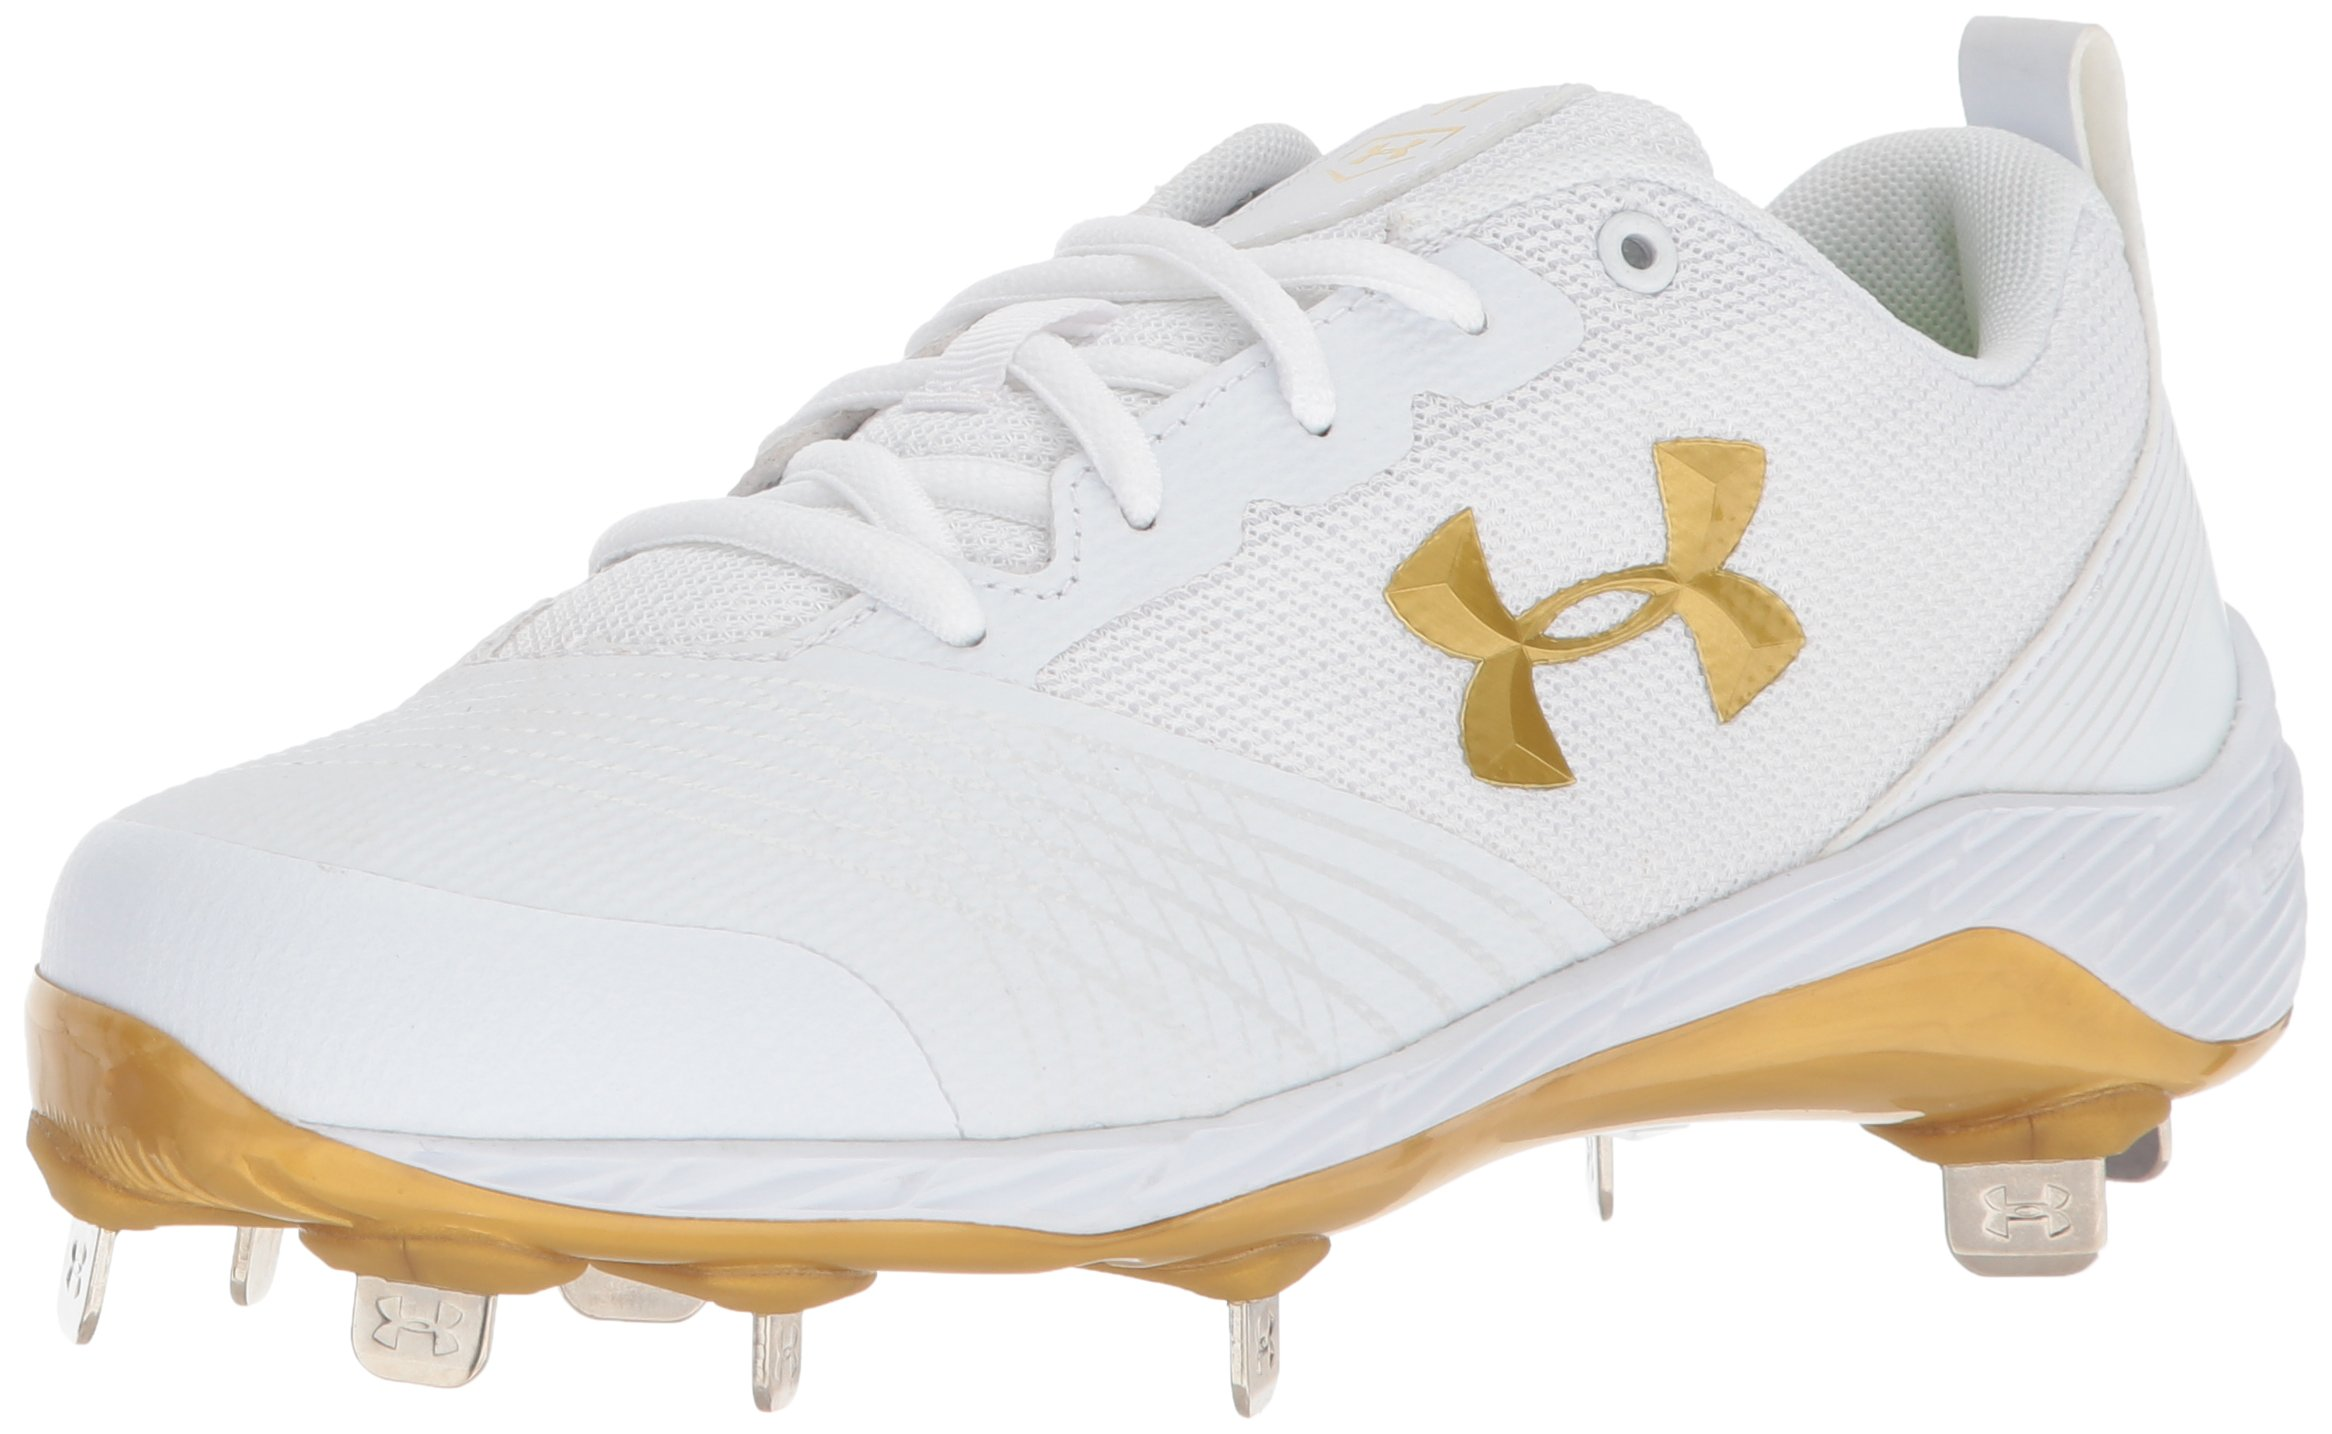 Under Armour Women's Glyde ST Softball Shoe, White (101)/Metallic Gold, 9 by Under Armour